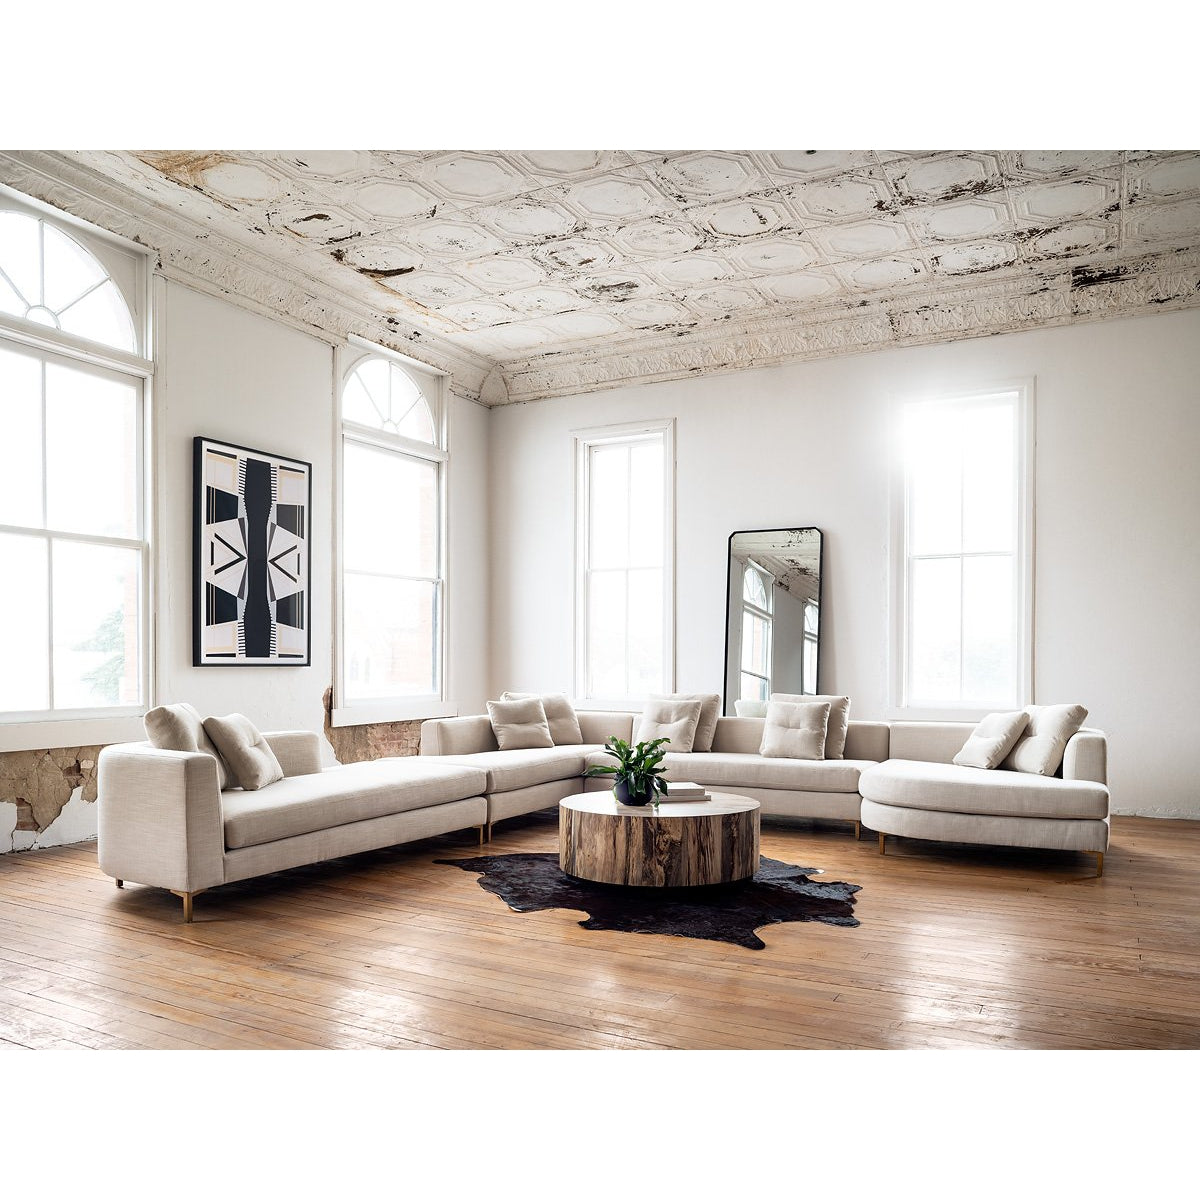 Greer 4 Pc Sectional - Laf Chaise